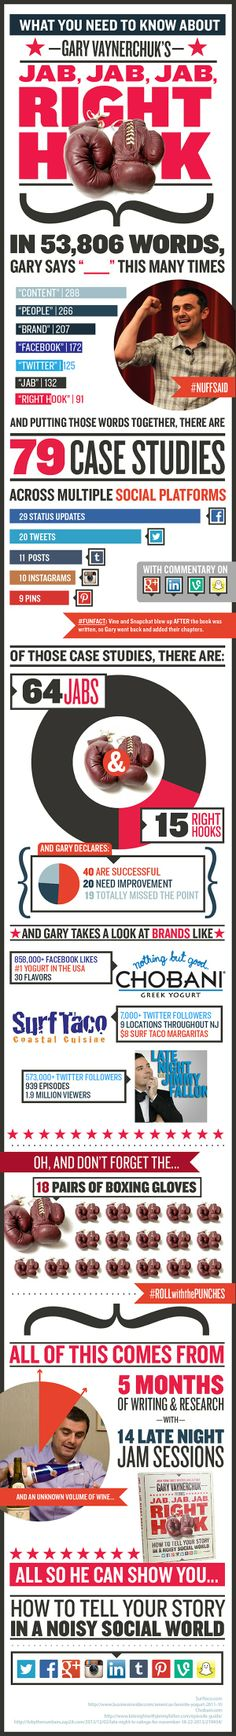 What You Need to Know About Jab, Jab, Jab, Right Hook by Gary Vaynerchuk [Infographic]